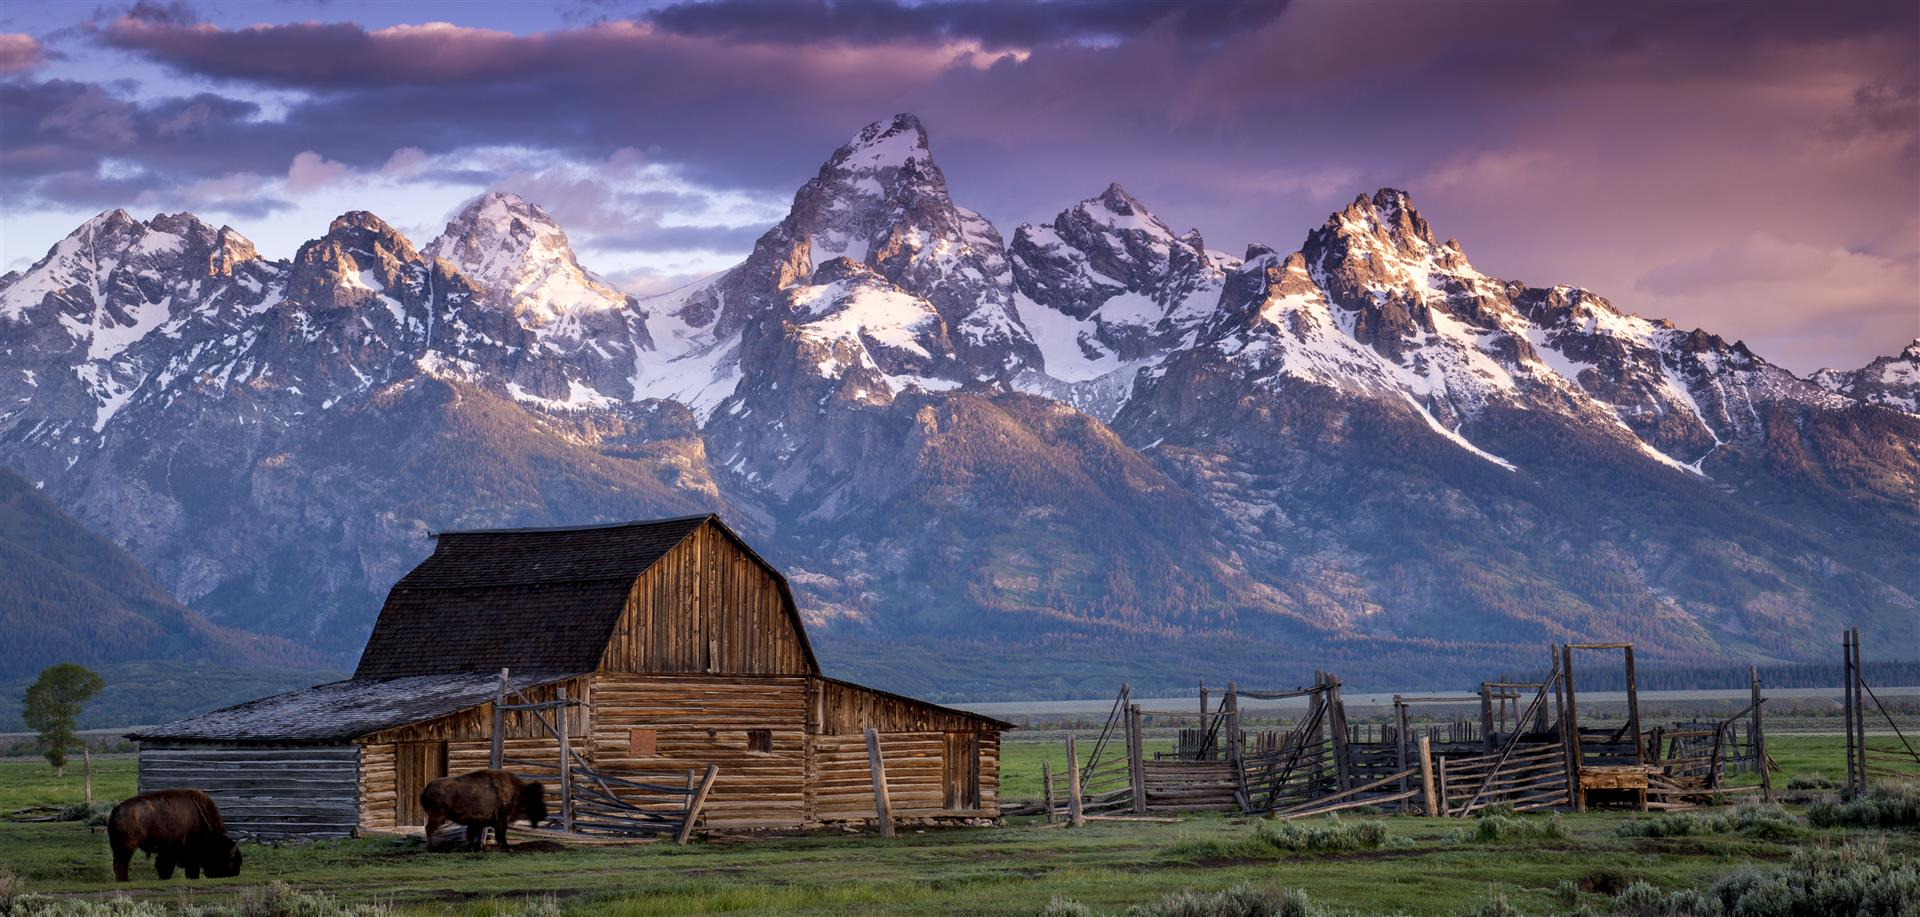 The Grand Tetons rise steeply above Jackson Hole and the John Moulton Barn. Photo by Gord McKenna via Flickr.